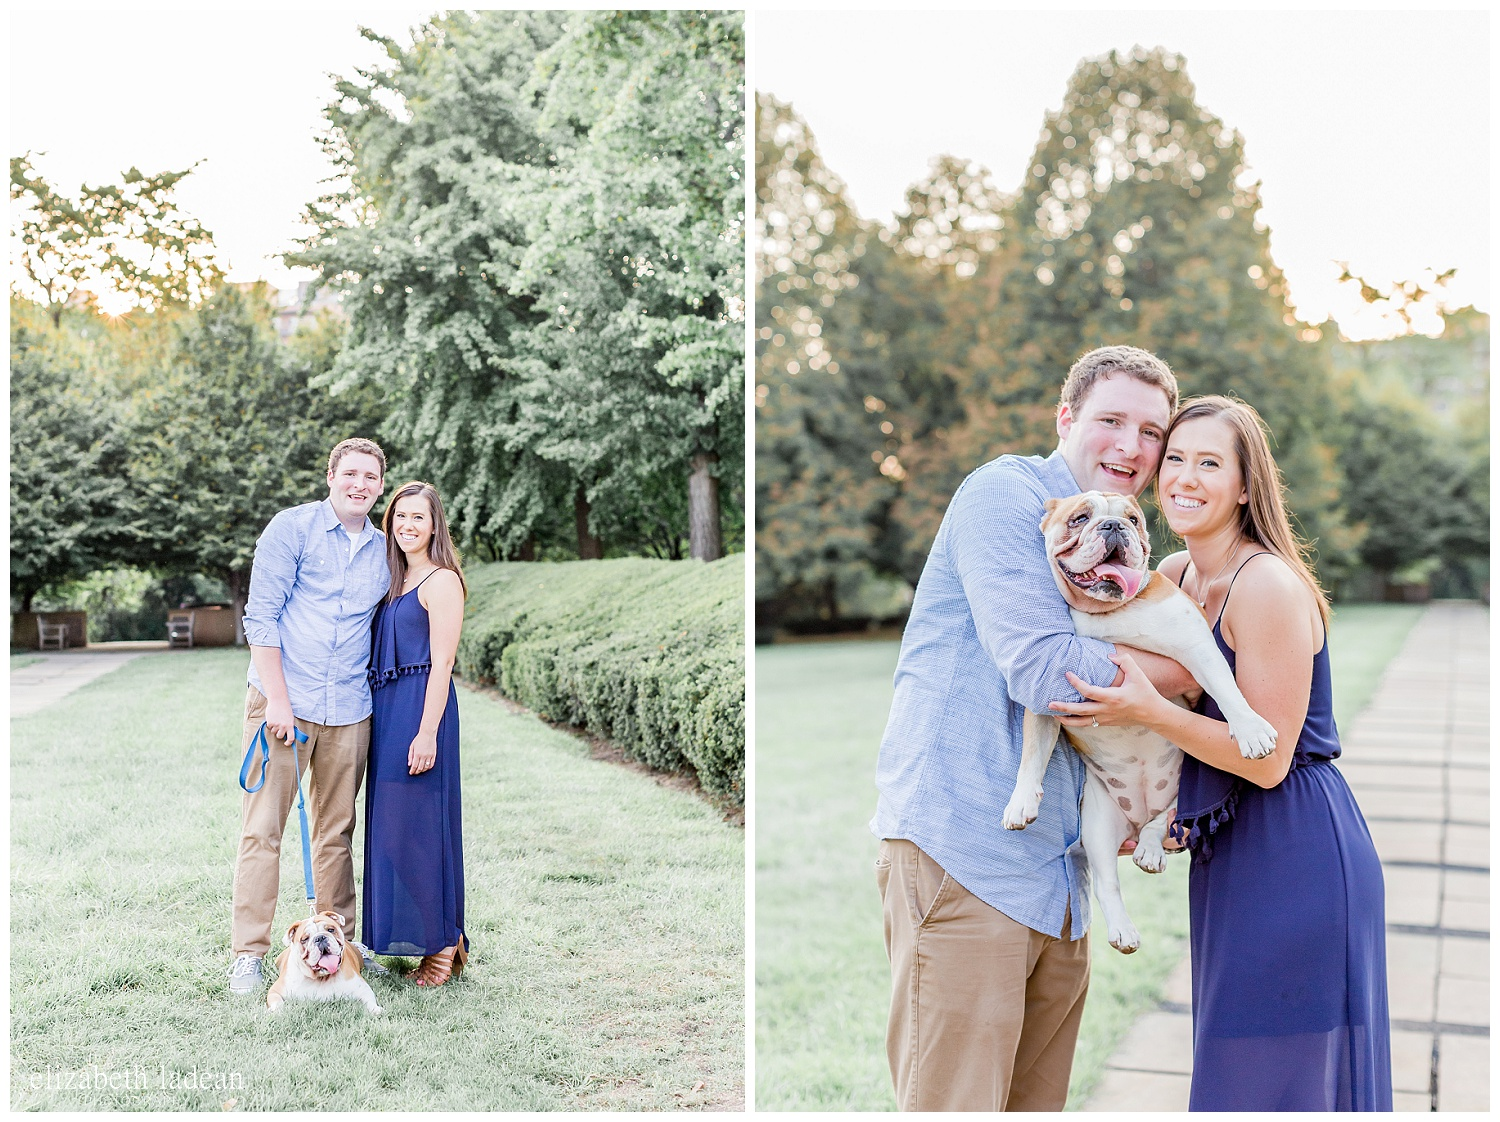 KC-Engagement-Photos-with-pets-2018-elizabeth-ladean-photography-photo-_6570.jpg